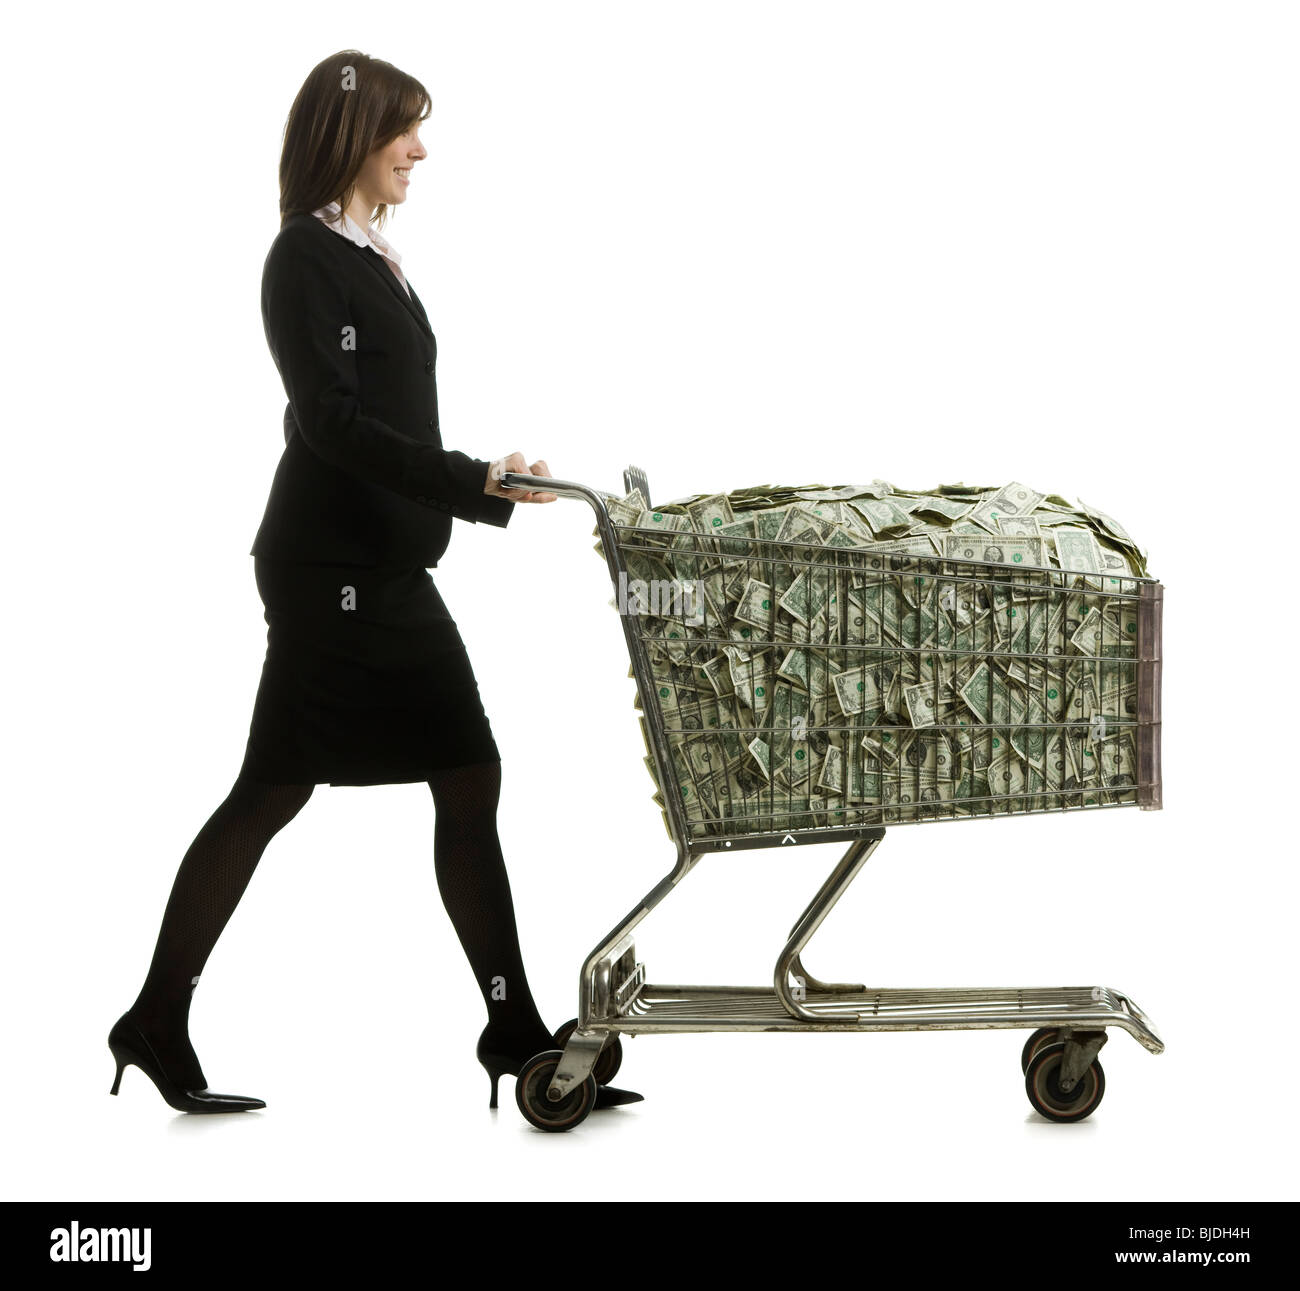 businessperson with a shopping cart full of money - Stock Image